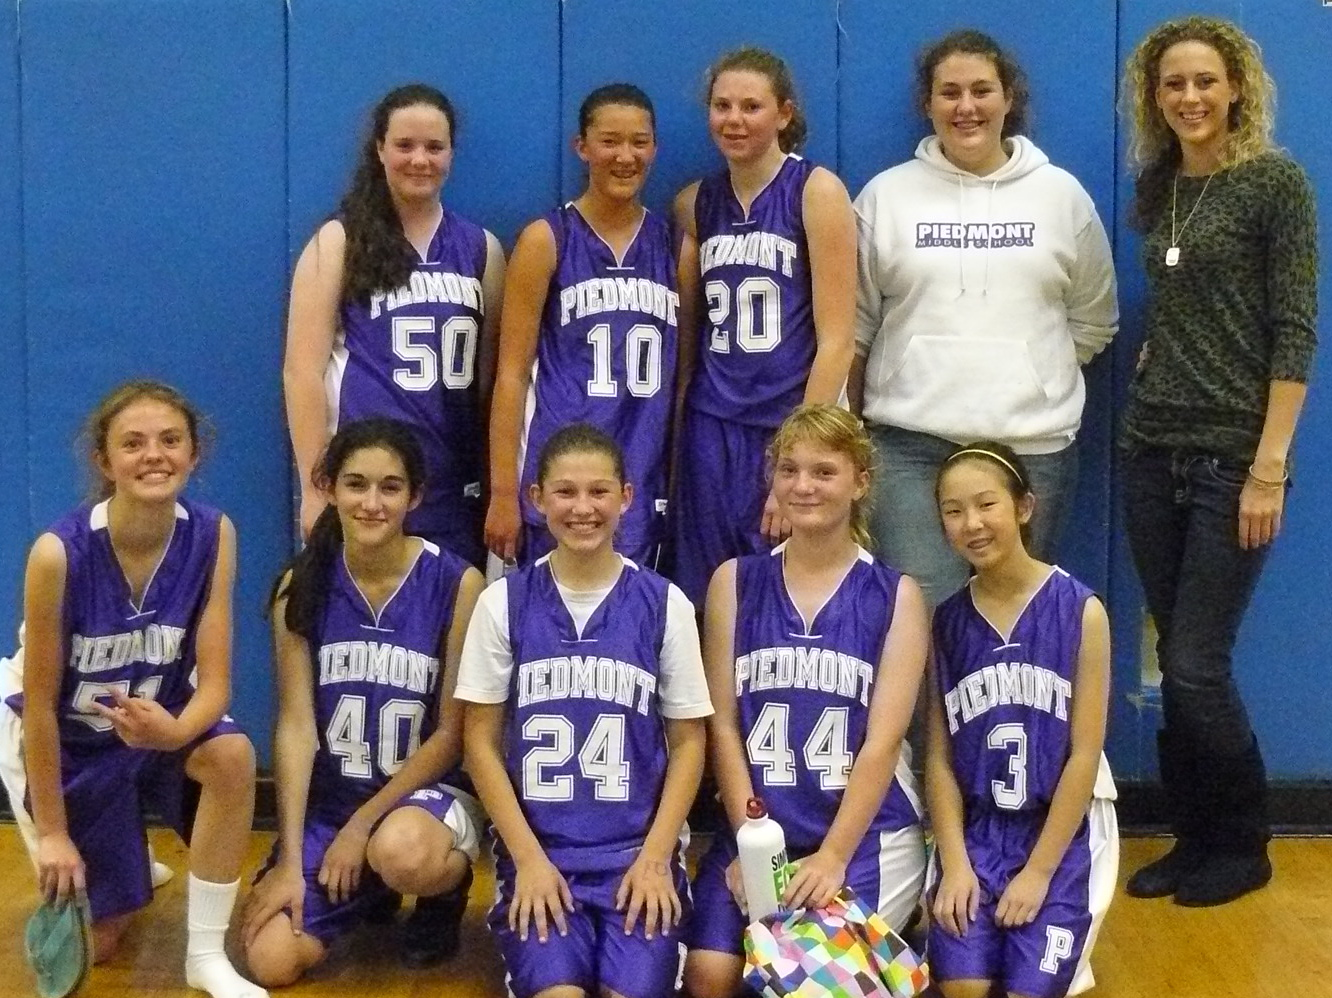 Pms boosters 8th grade girls basketball stanley middle school